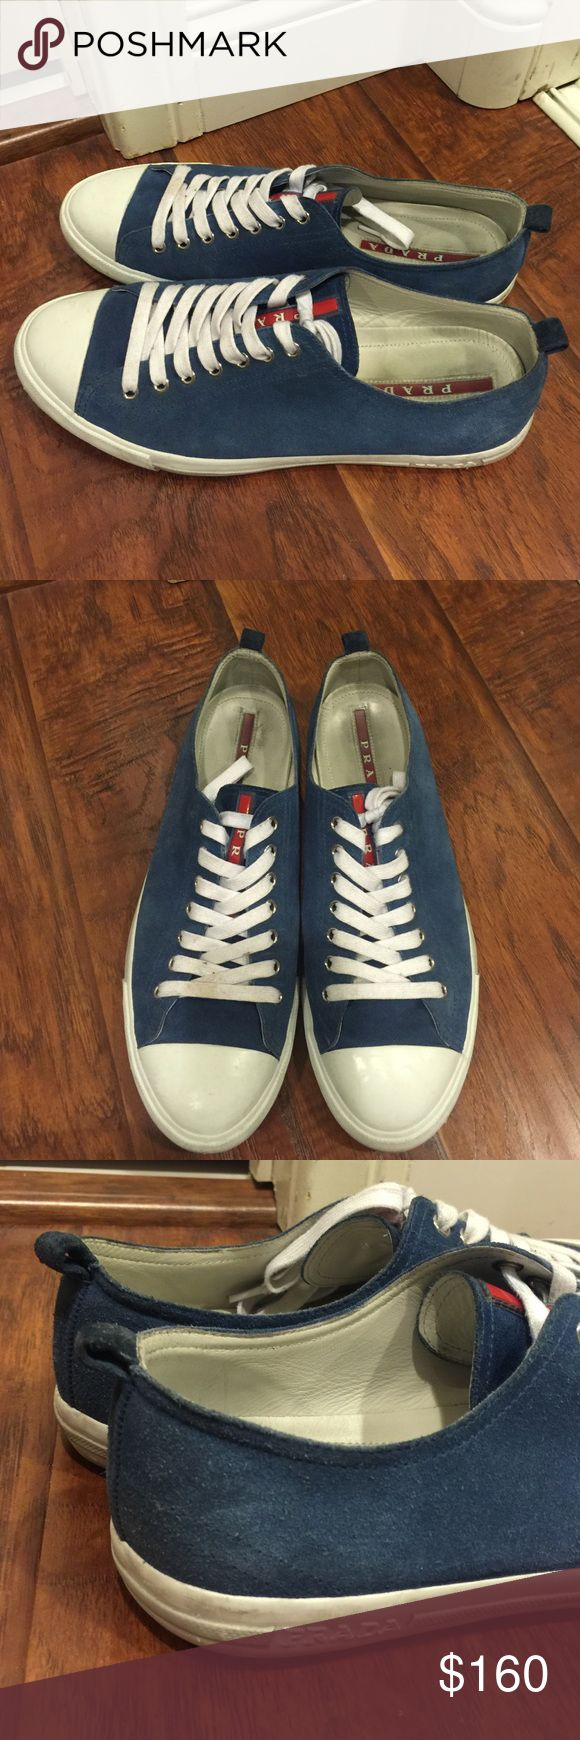 Men's Prada Sneakers Men's PRADA blue sneakers. Pre-loved, but still in good condition for the next buyer. Size 9 Prada Shoes Sneakers